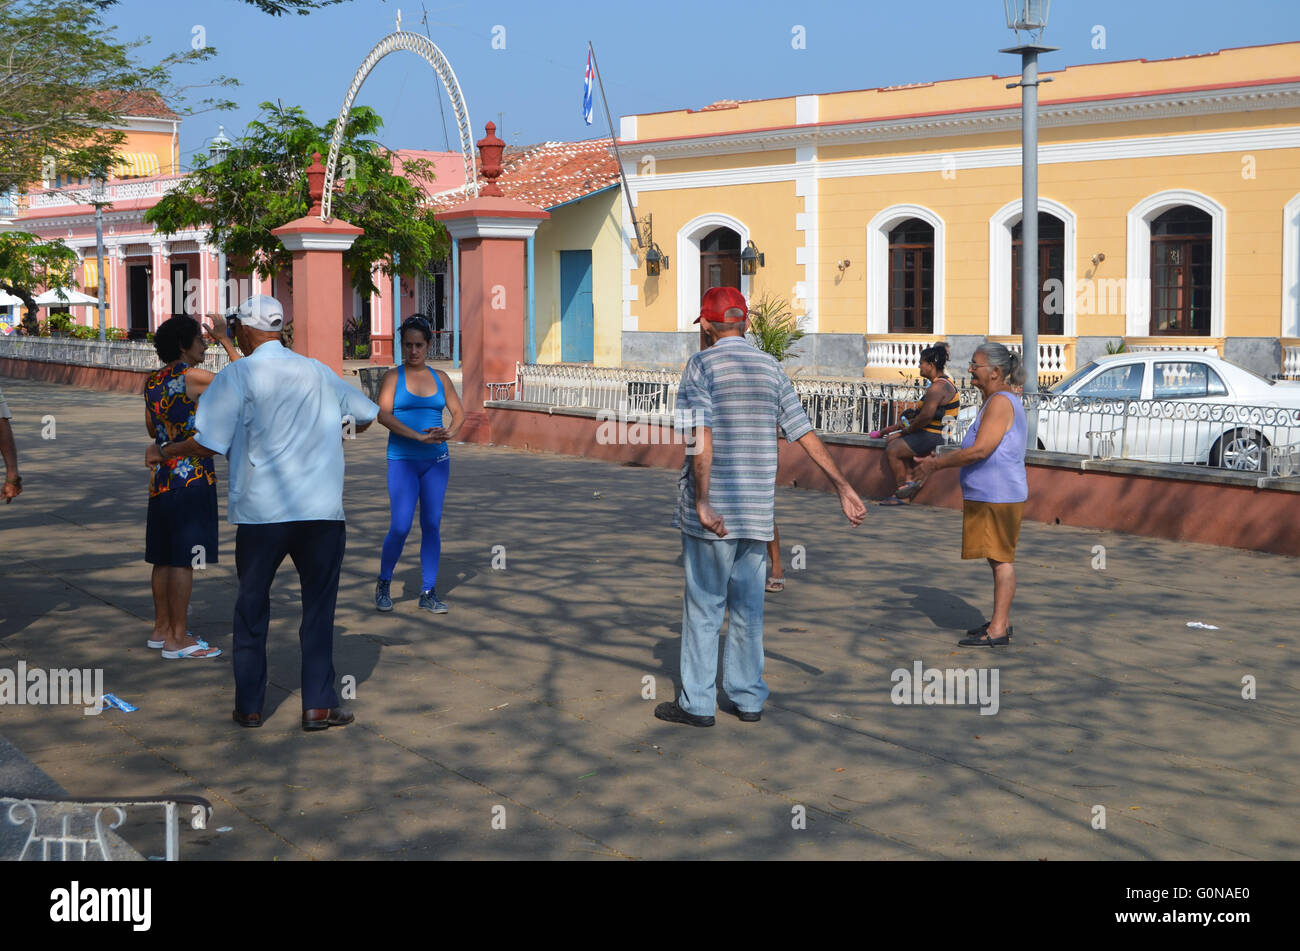 Tai Chi in the main square, Remedios, Cuba 2016 - Stock Image